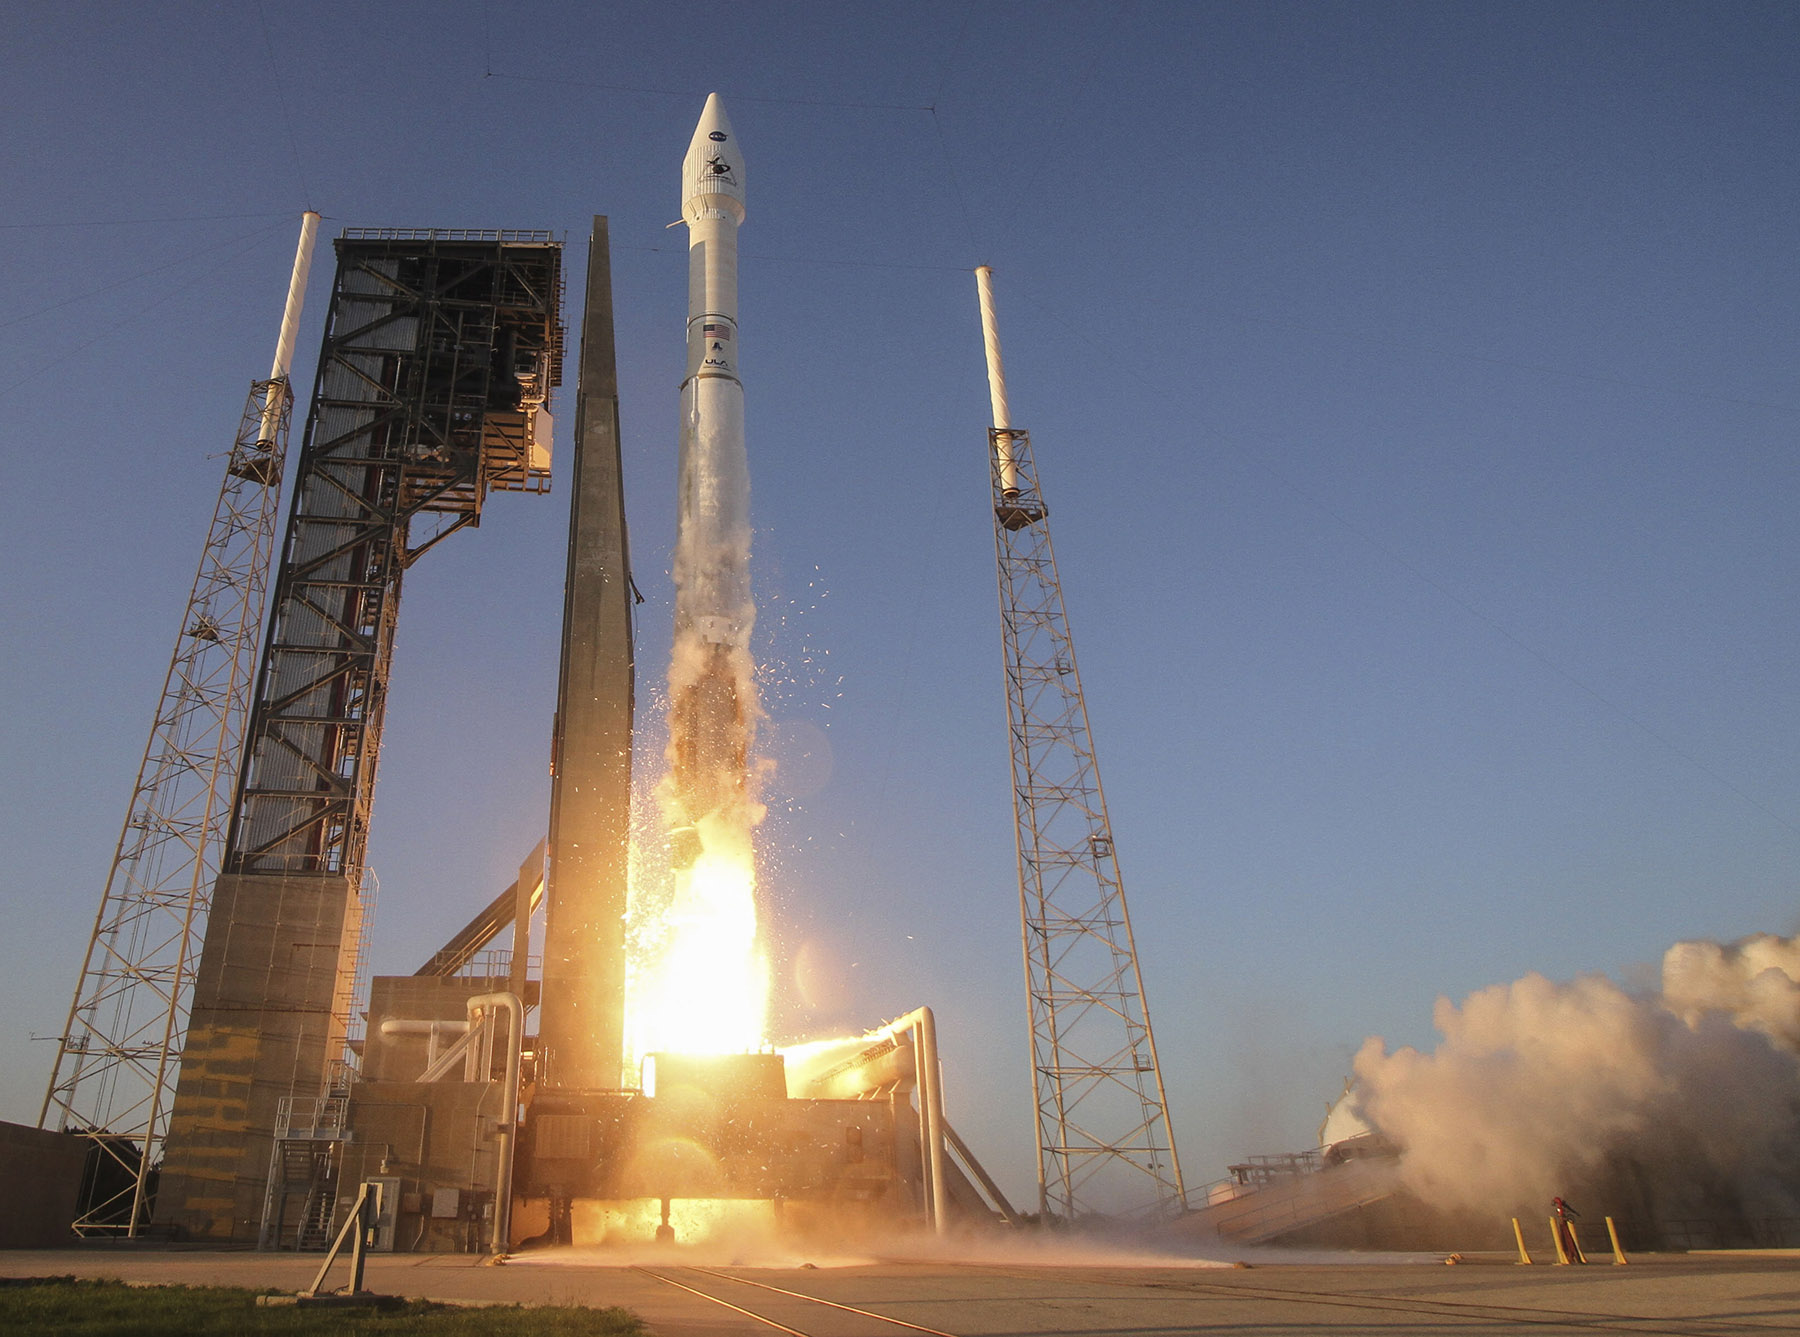 A United Launch Alliance Atlas V rocket carrying NASA's OSIRIS-REx mission launches into space from Cape Canaveral Air Force Station, Florida on Sept. 8, 2016.